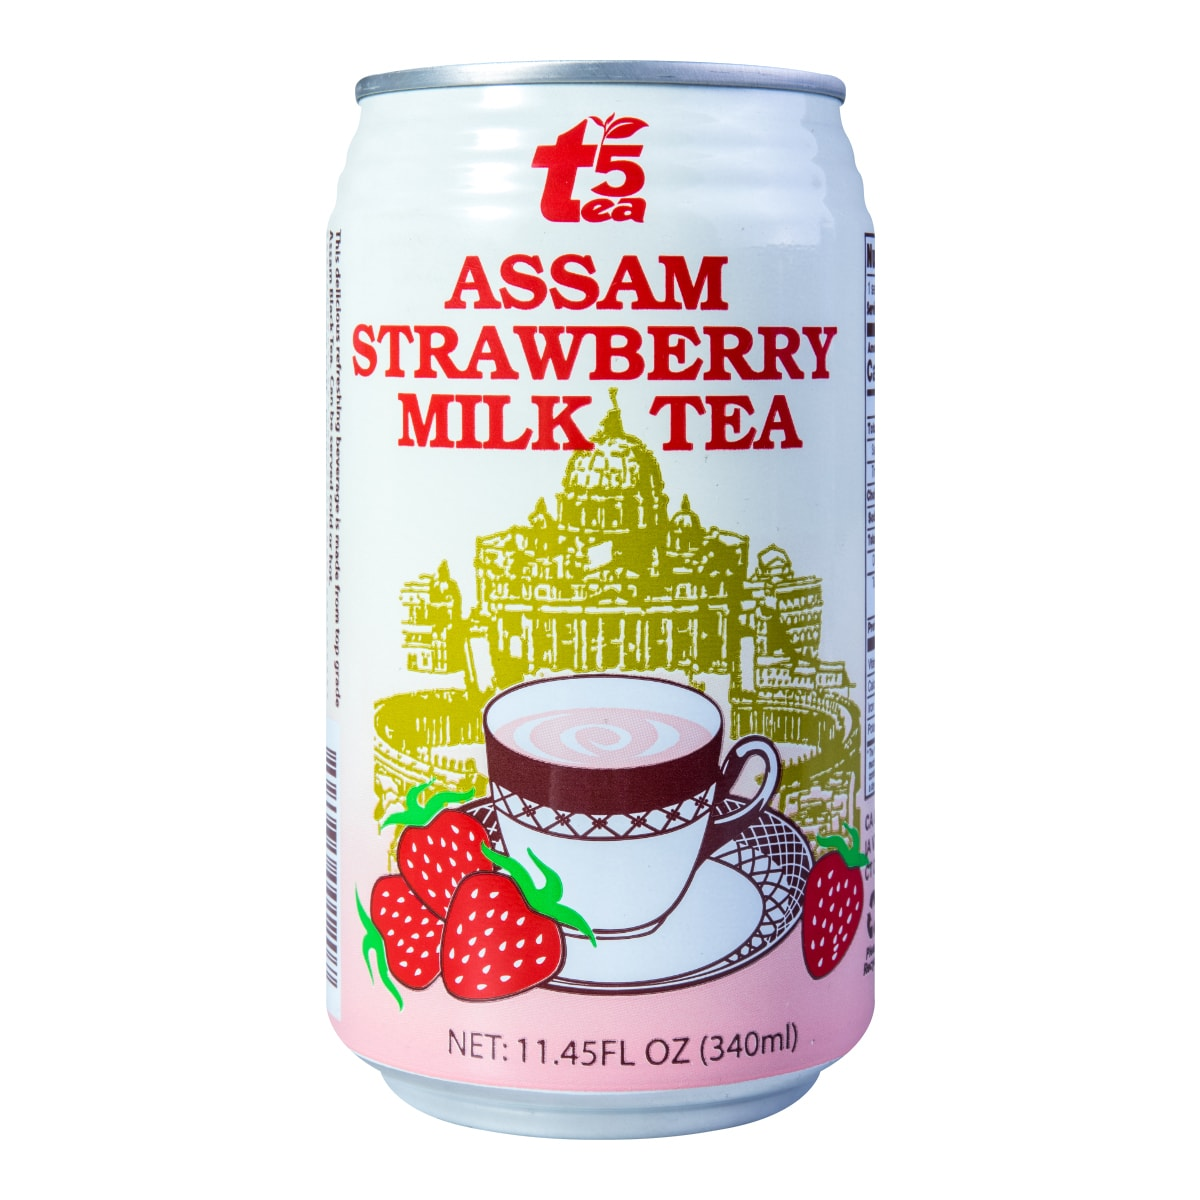 TEA5 Assam Strawberry Milk Tea 340ml